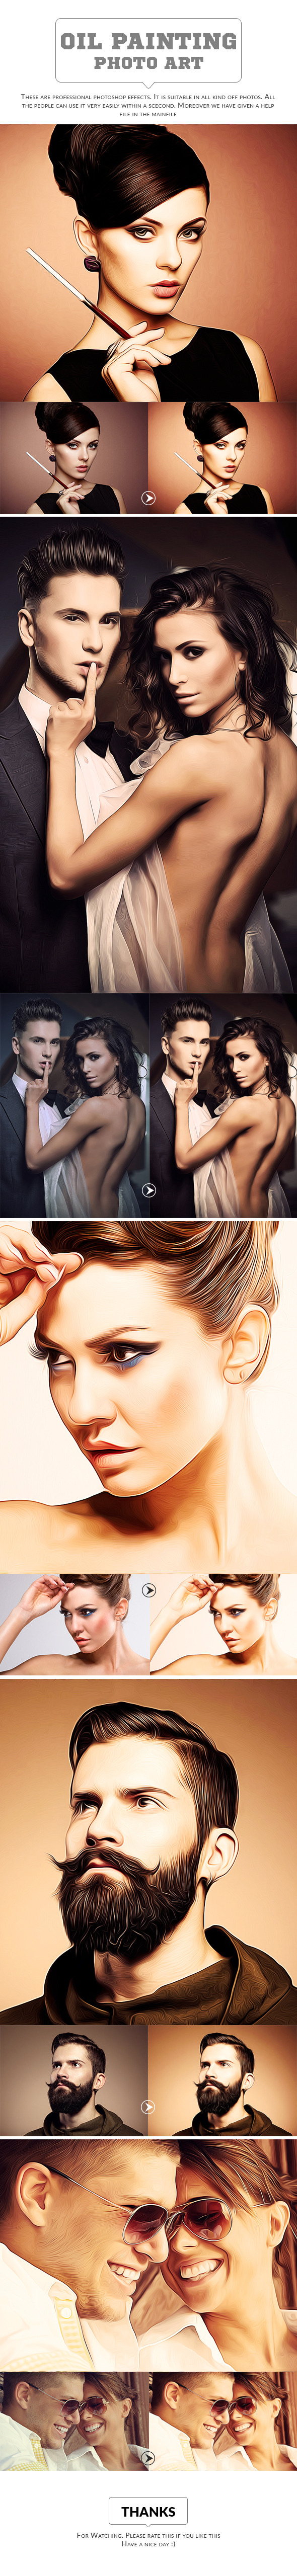 Oil Painting Art - Photo Effects Actions